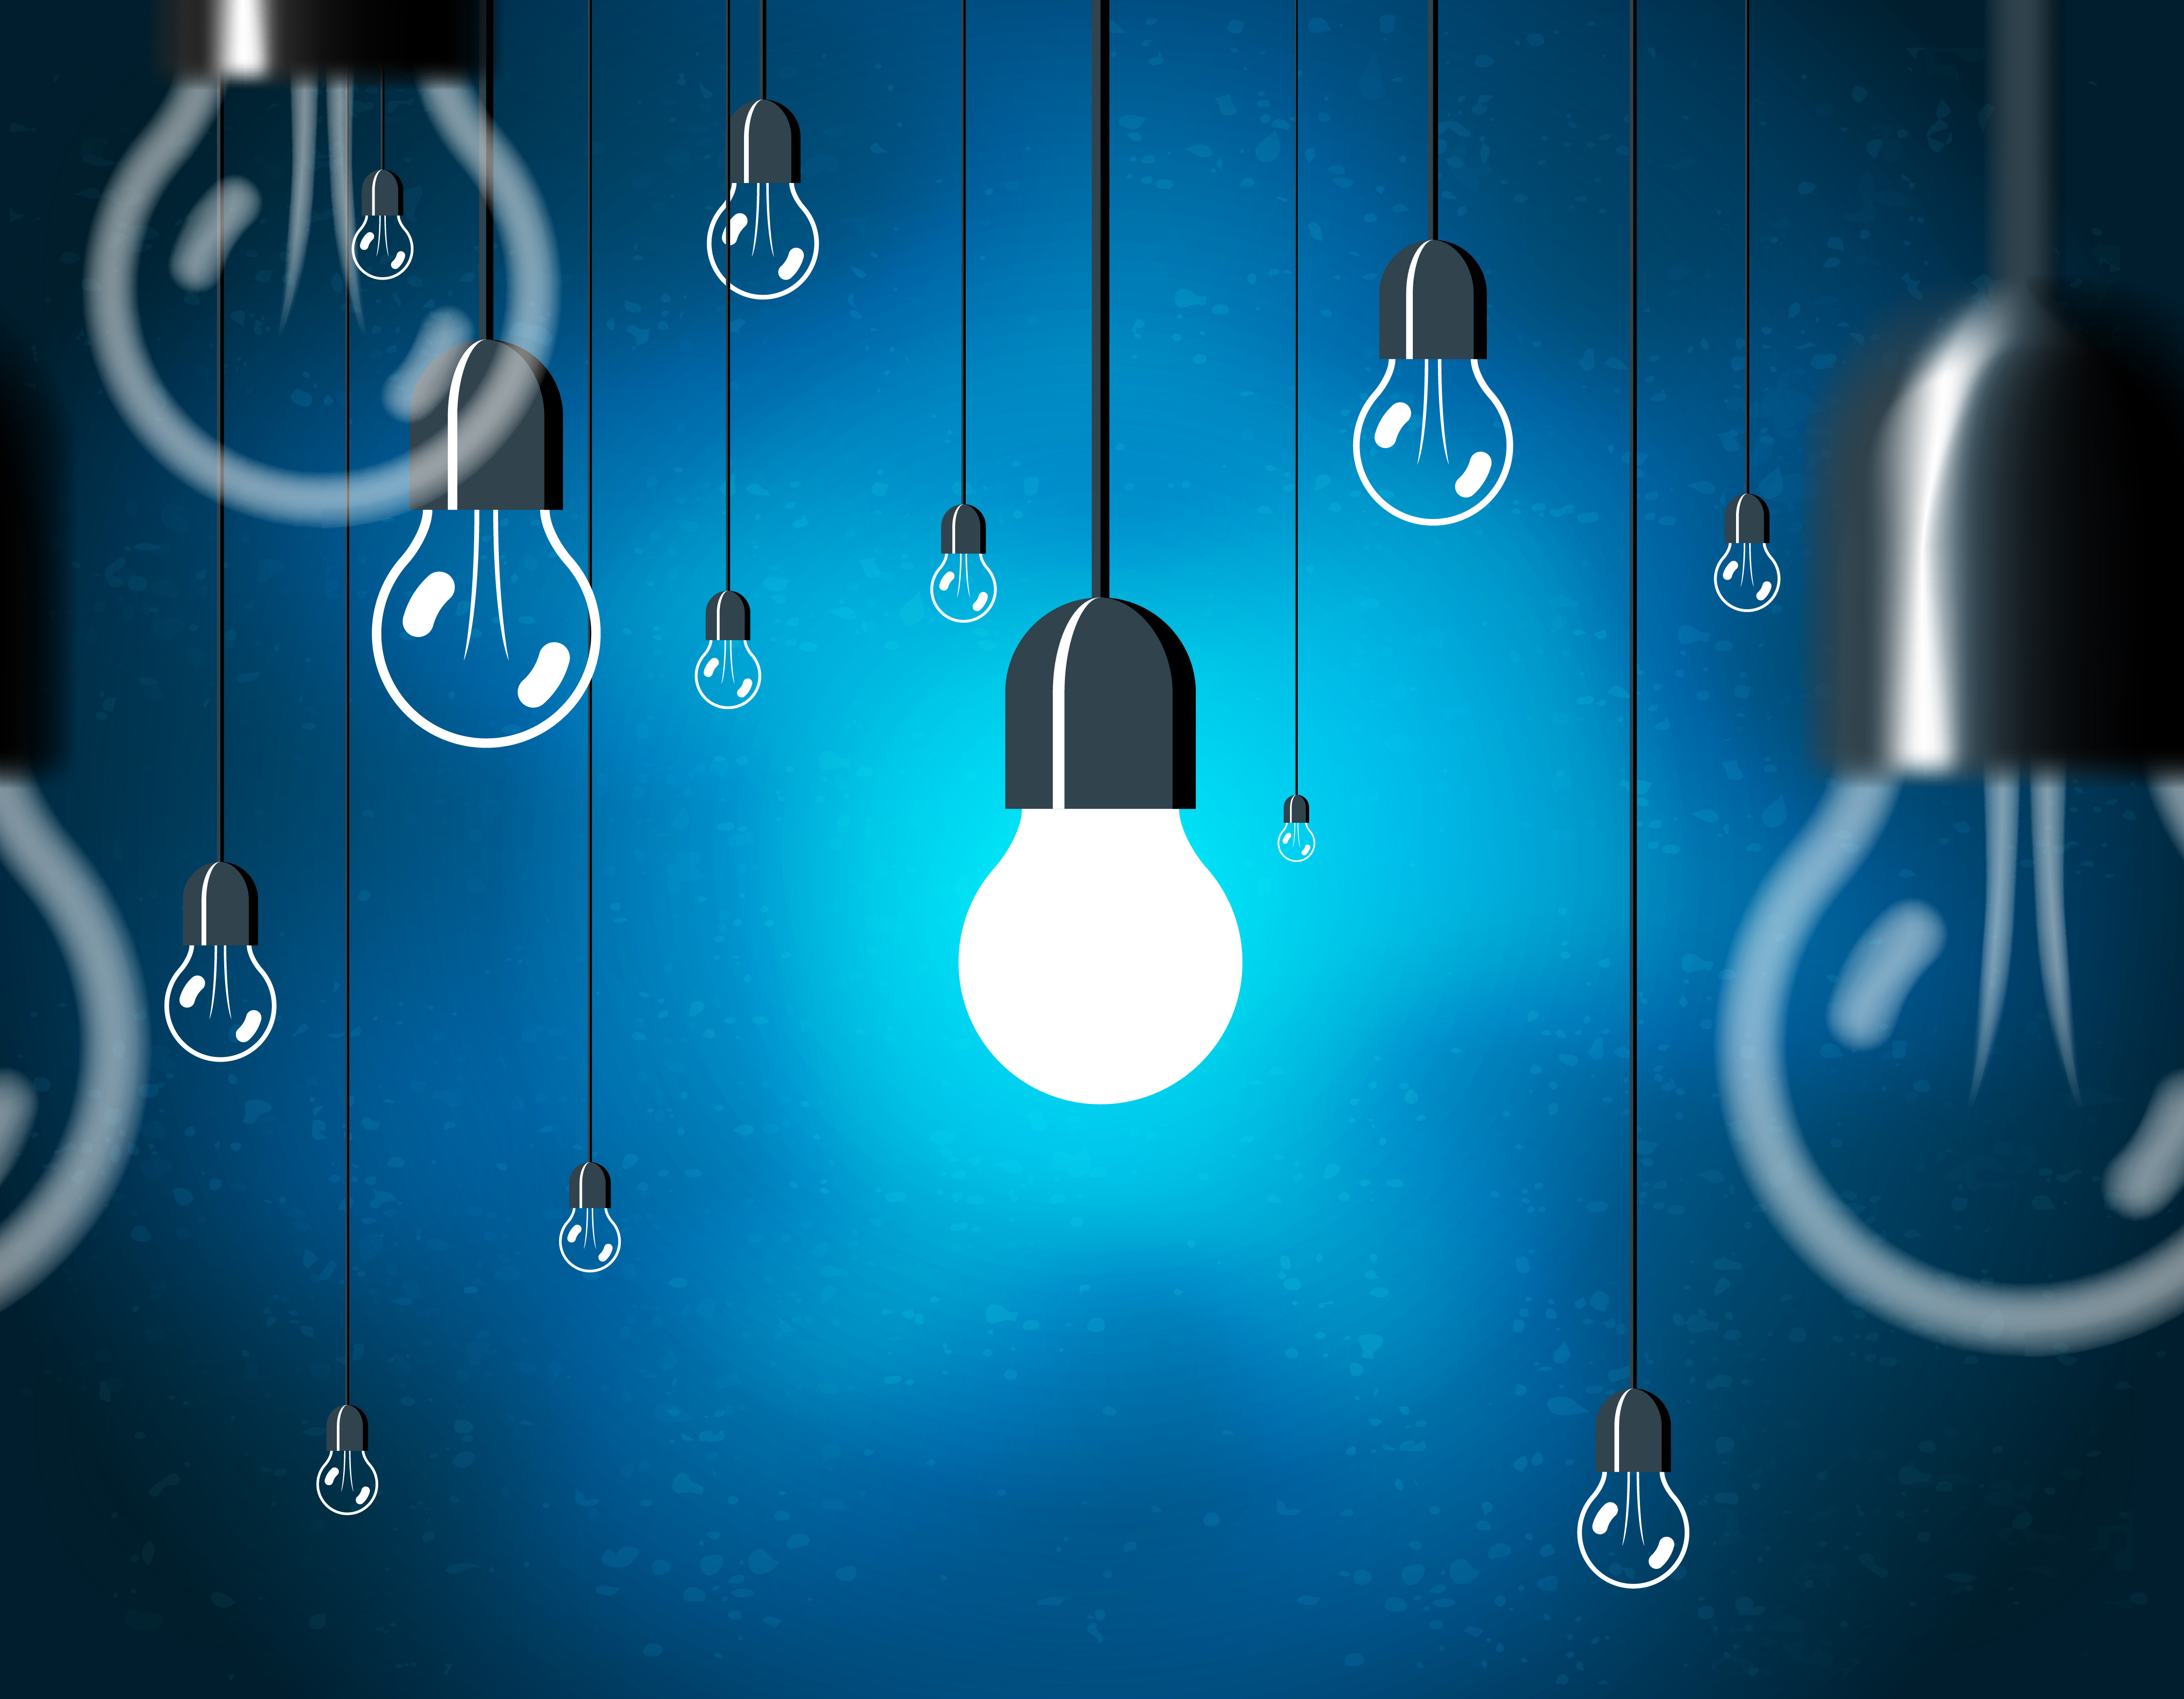 Light Bulb depicting the thought a leader has